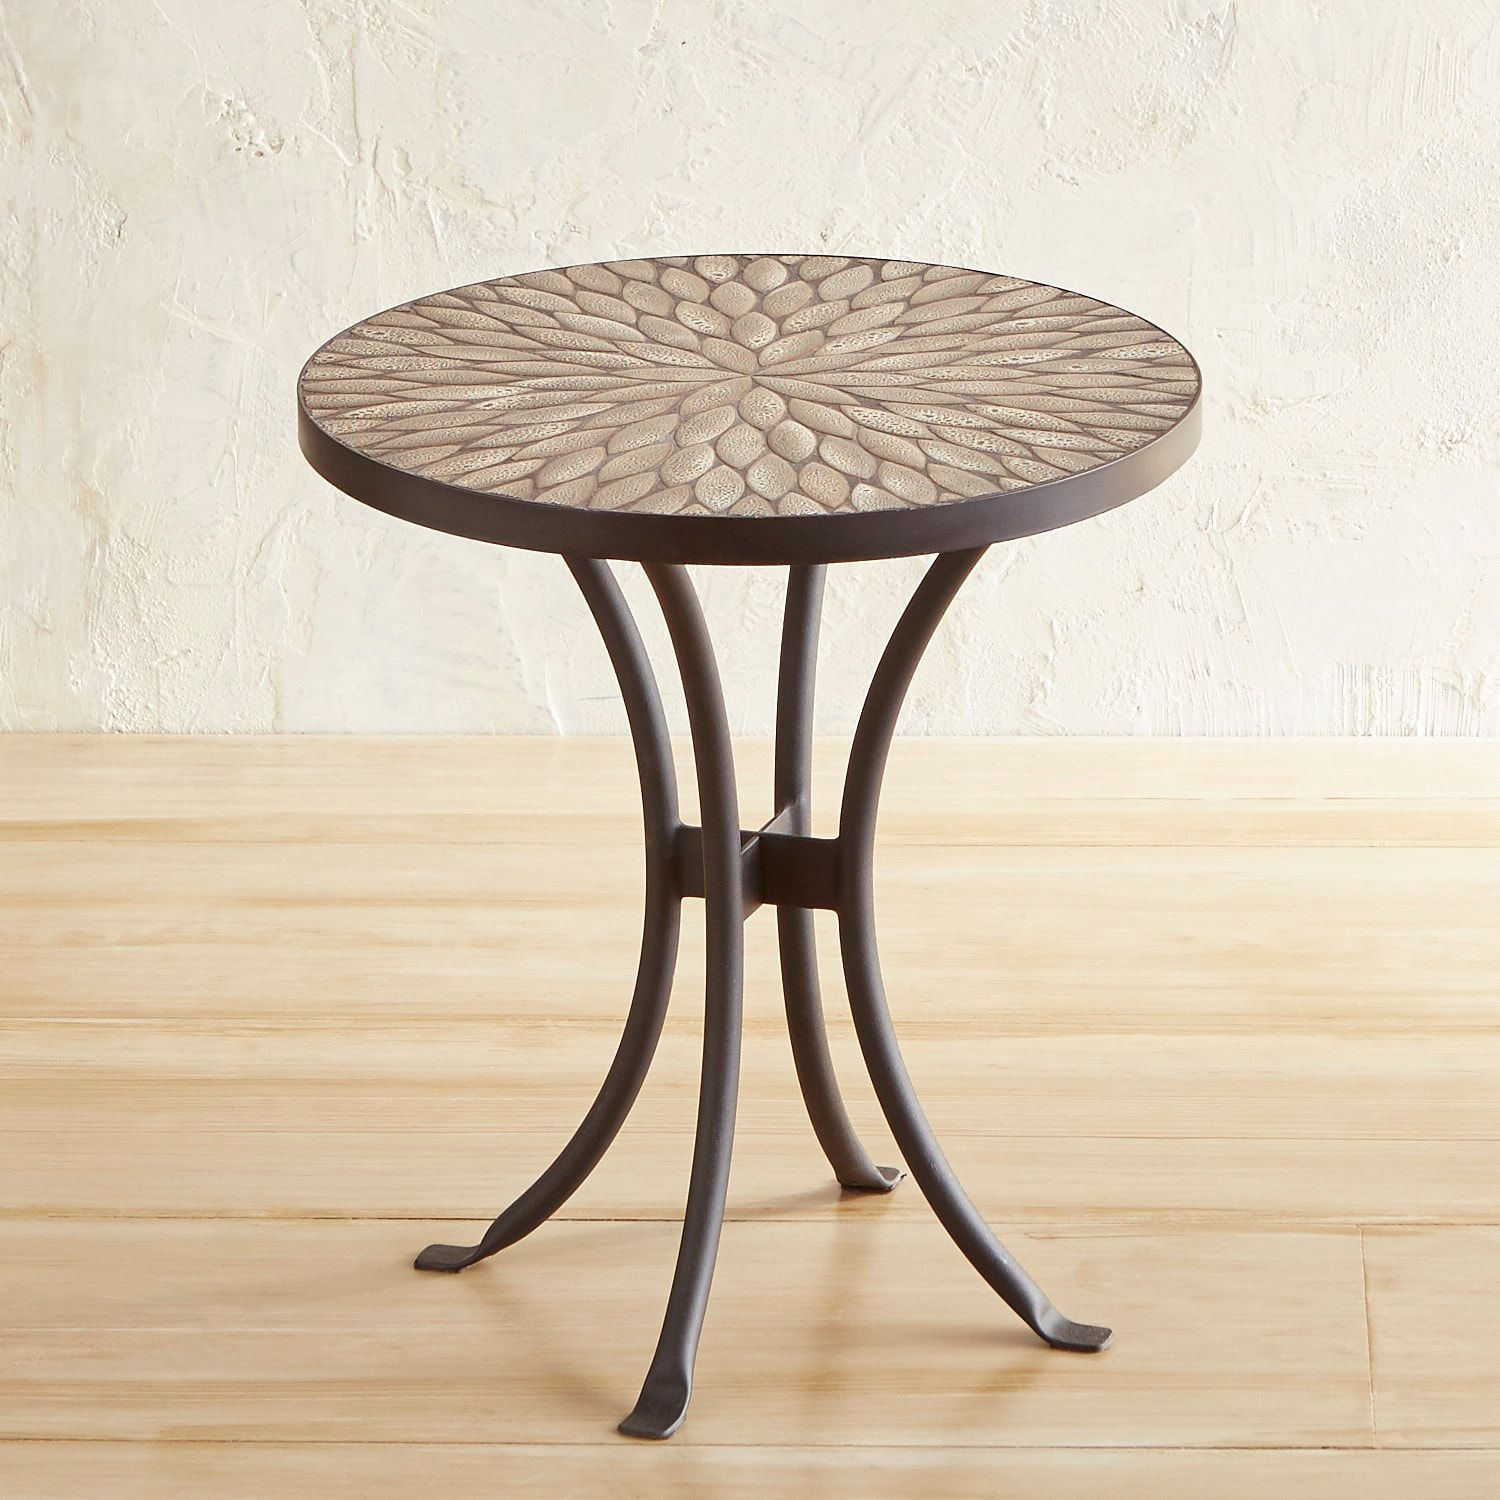 jules gray pebbles mosaic accent table west elm free shipping code modern style end tables drawer console tablecloth for round patio chairs wooden plant stand curved acrylic